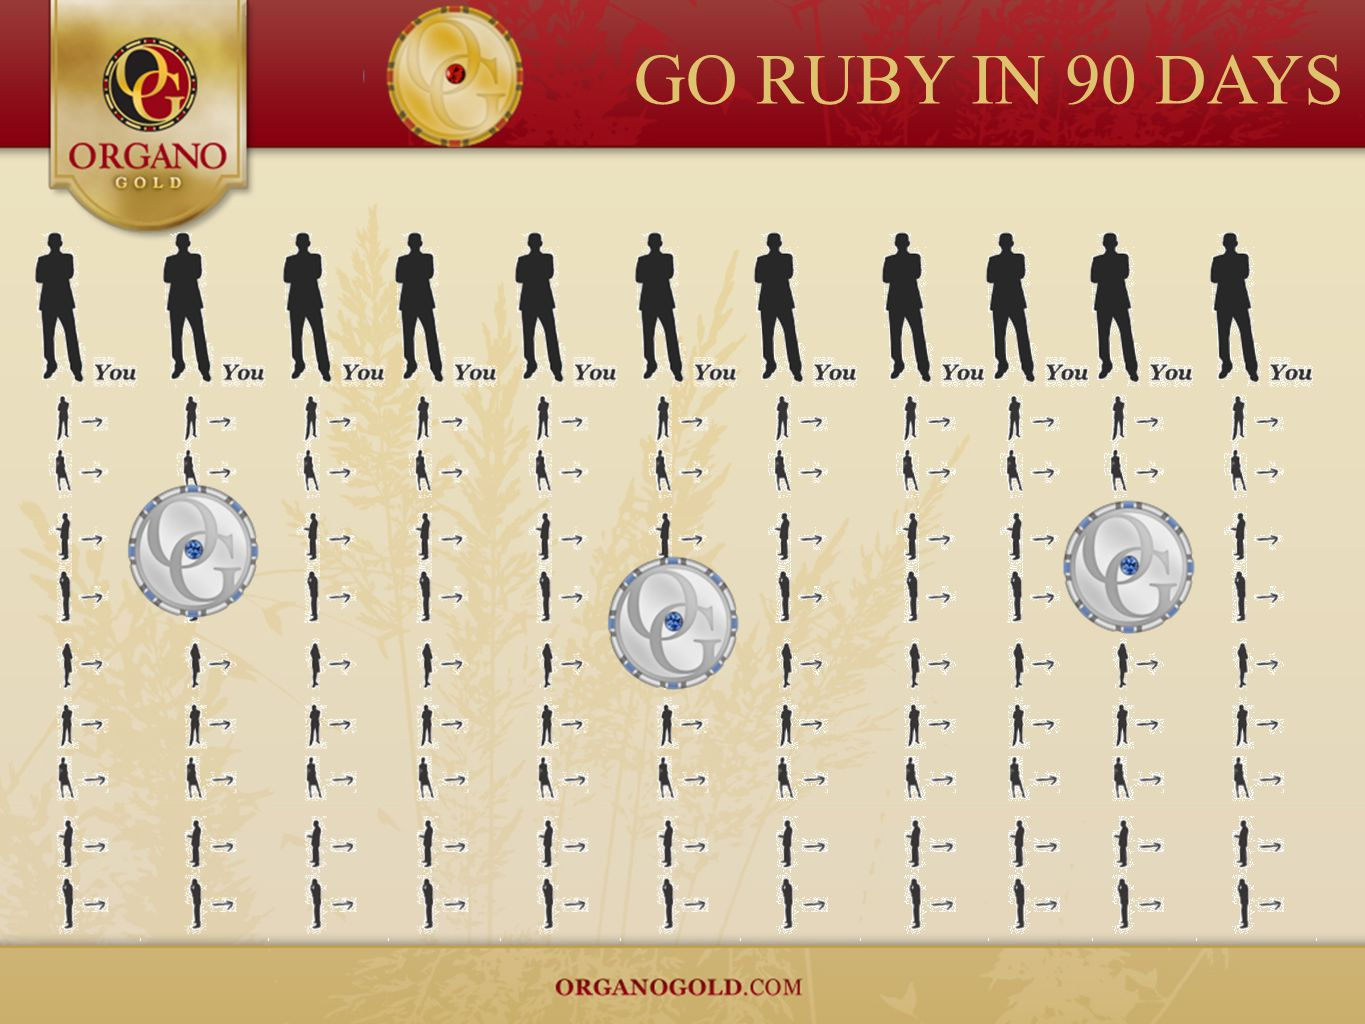 GO RUBY IN 90 DAYS